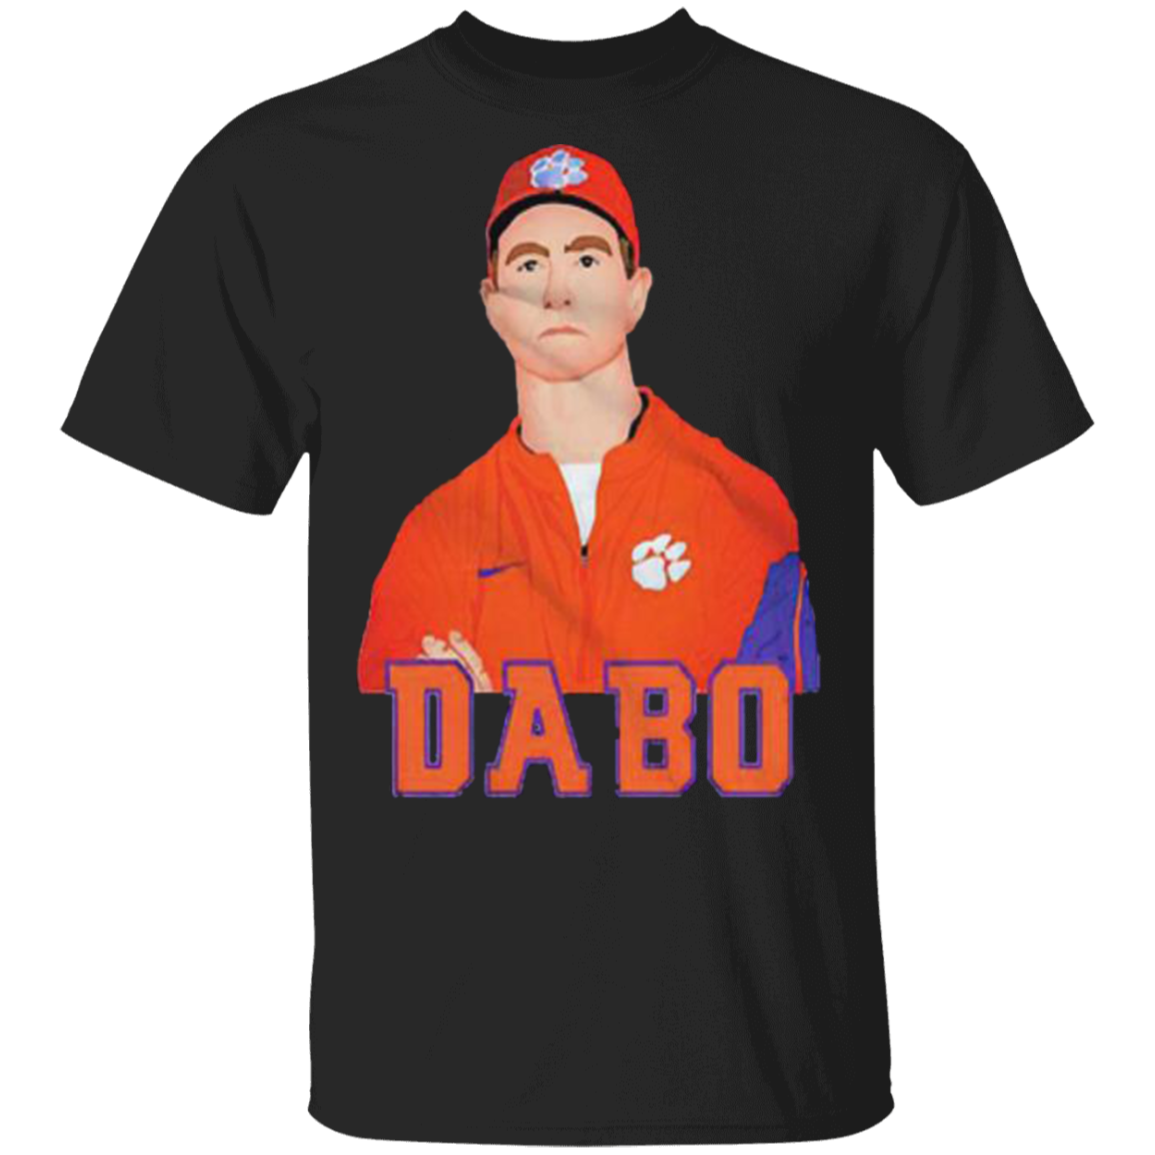 Dabo Football Matters Shirt Protest Blm